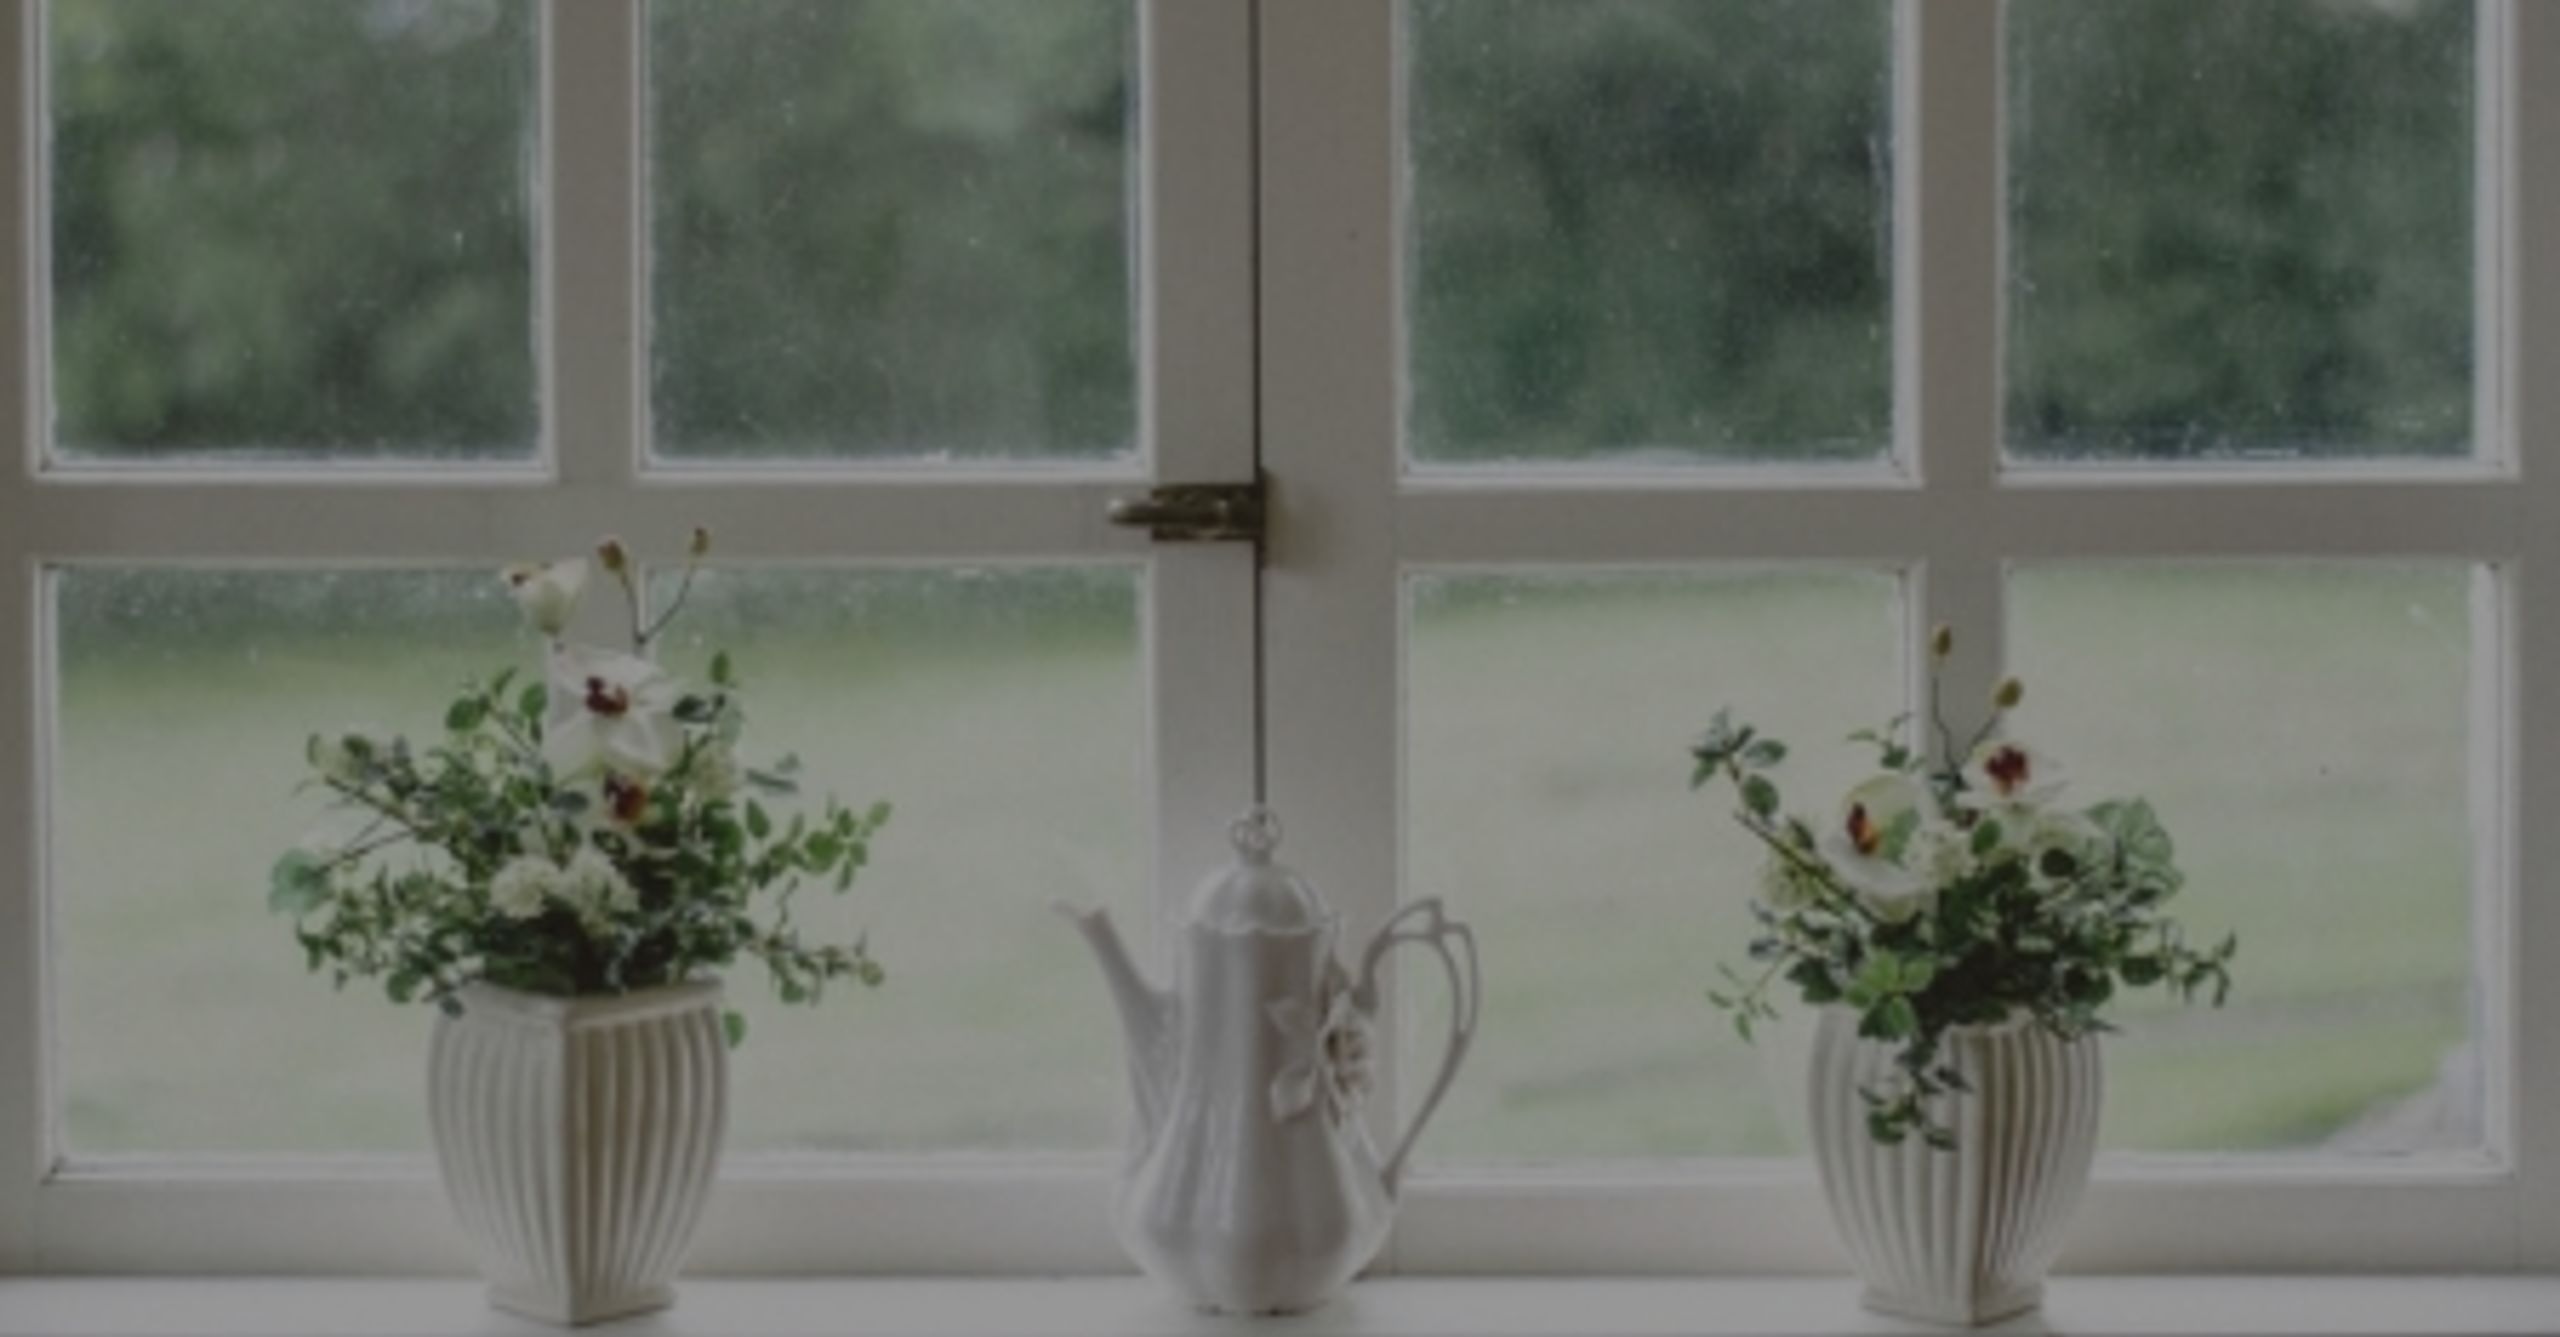 Does Your Home Need New Windows?